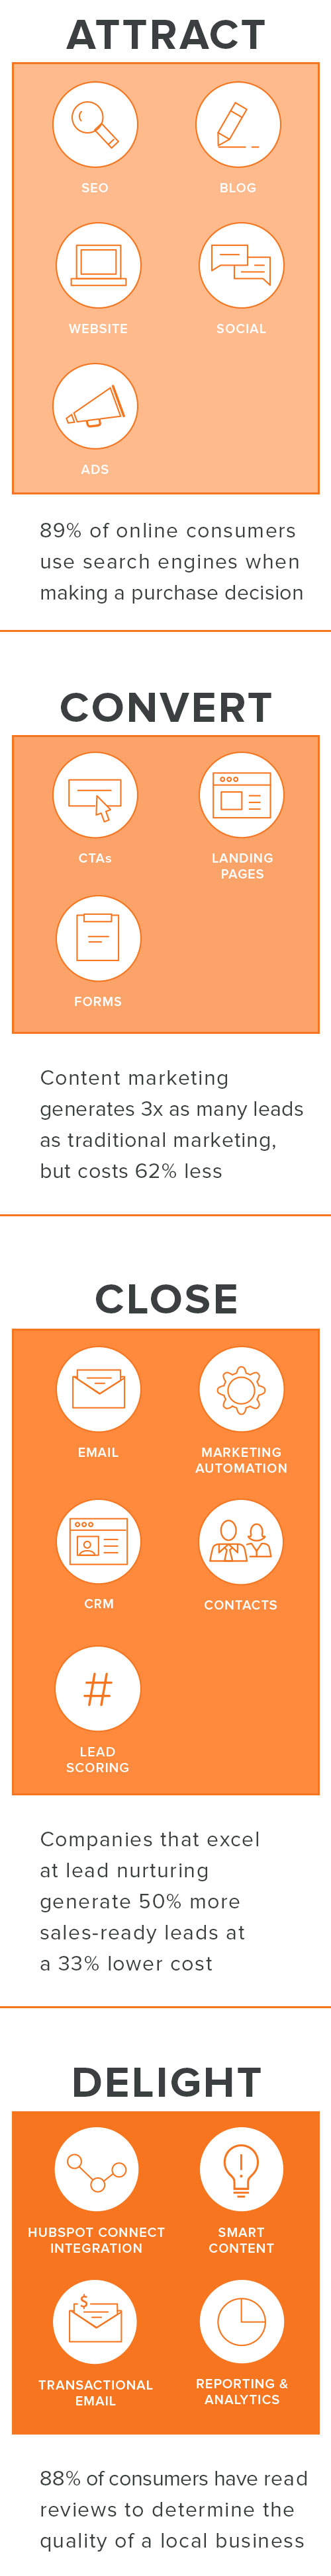 Sales_Walk_Through_Funnel_Graphic_MOBILE_HubSpot_Tools.jpg